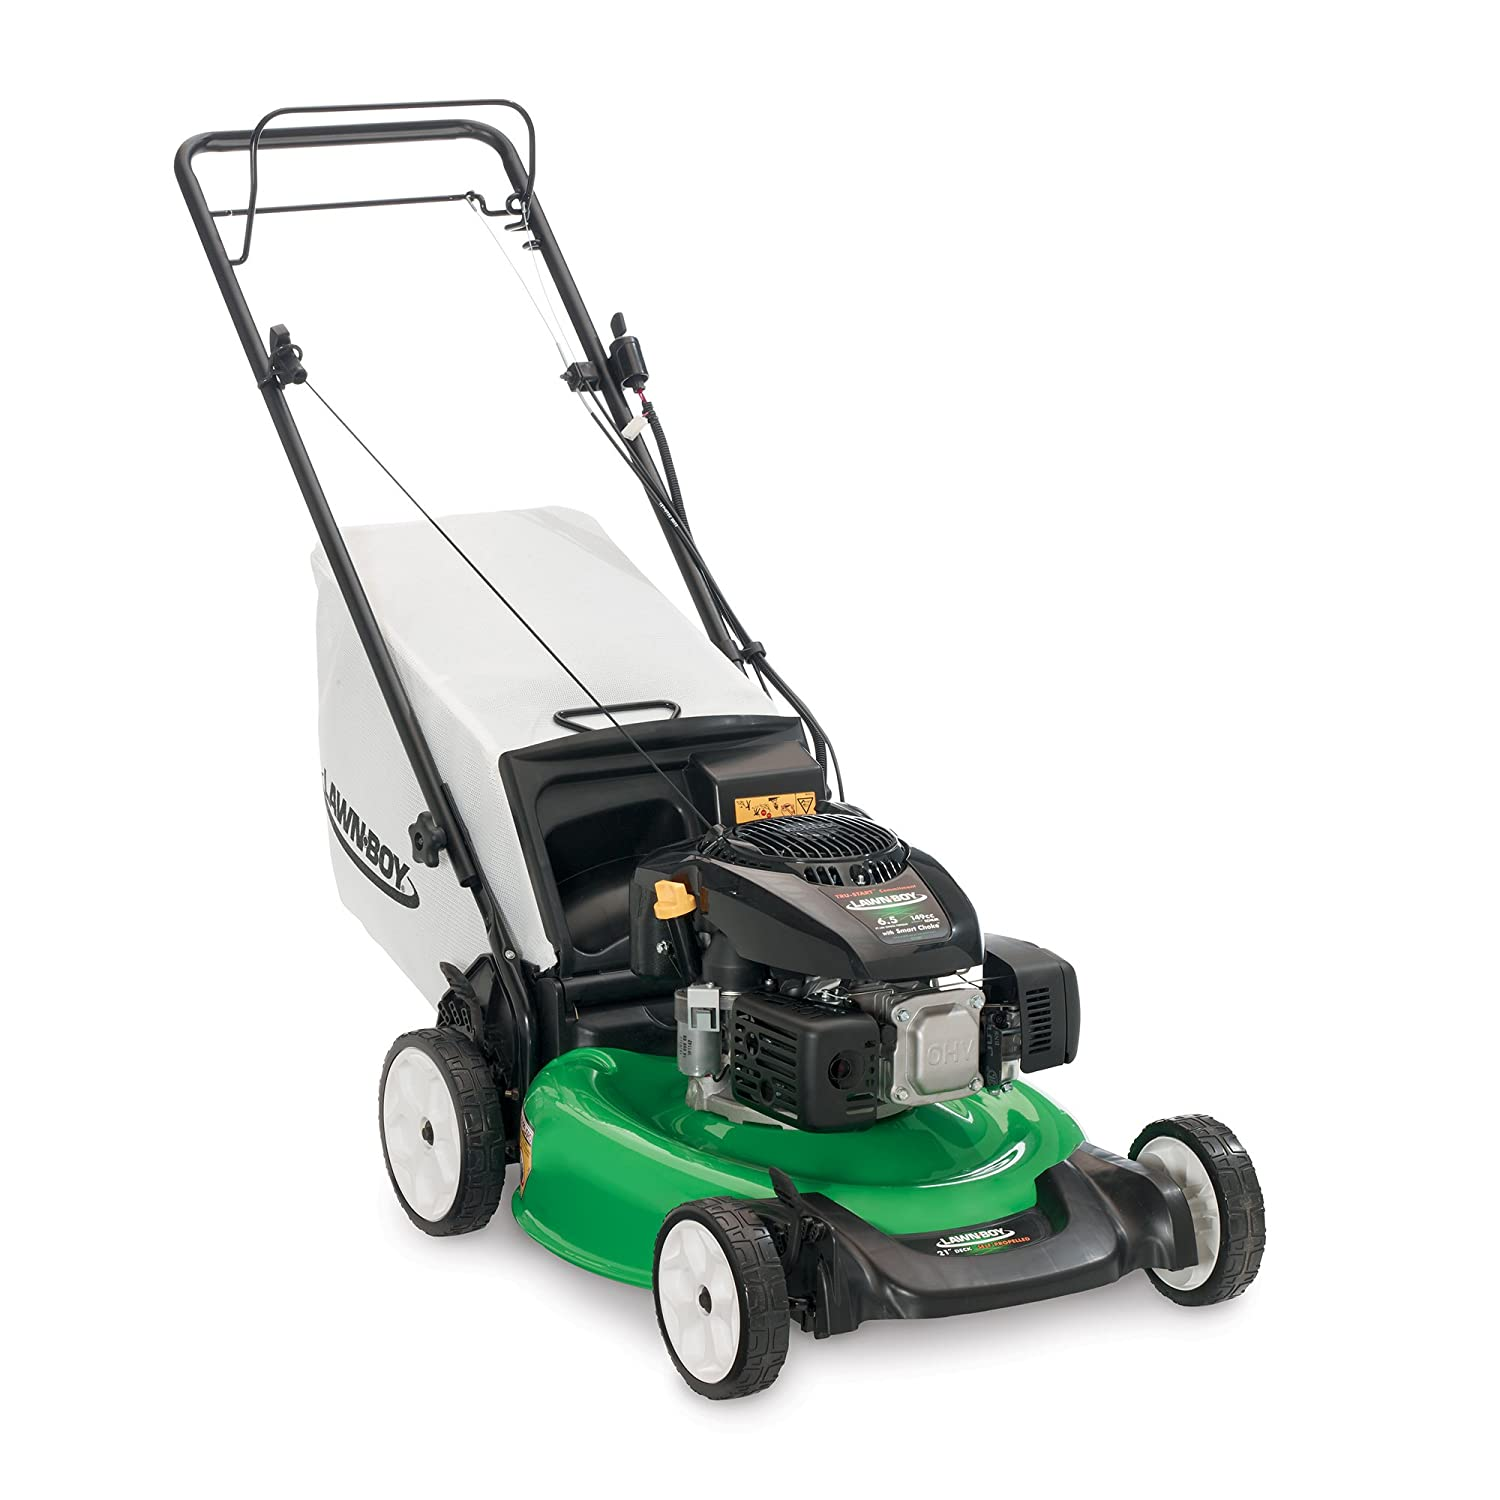 Lawn-Boy 10734 Electric Start Self-Propelled Gas Mower Review